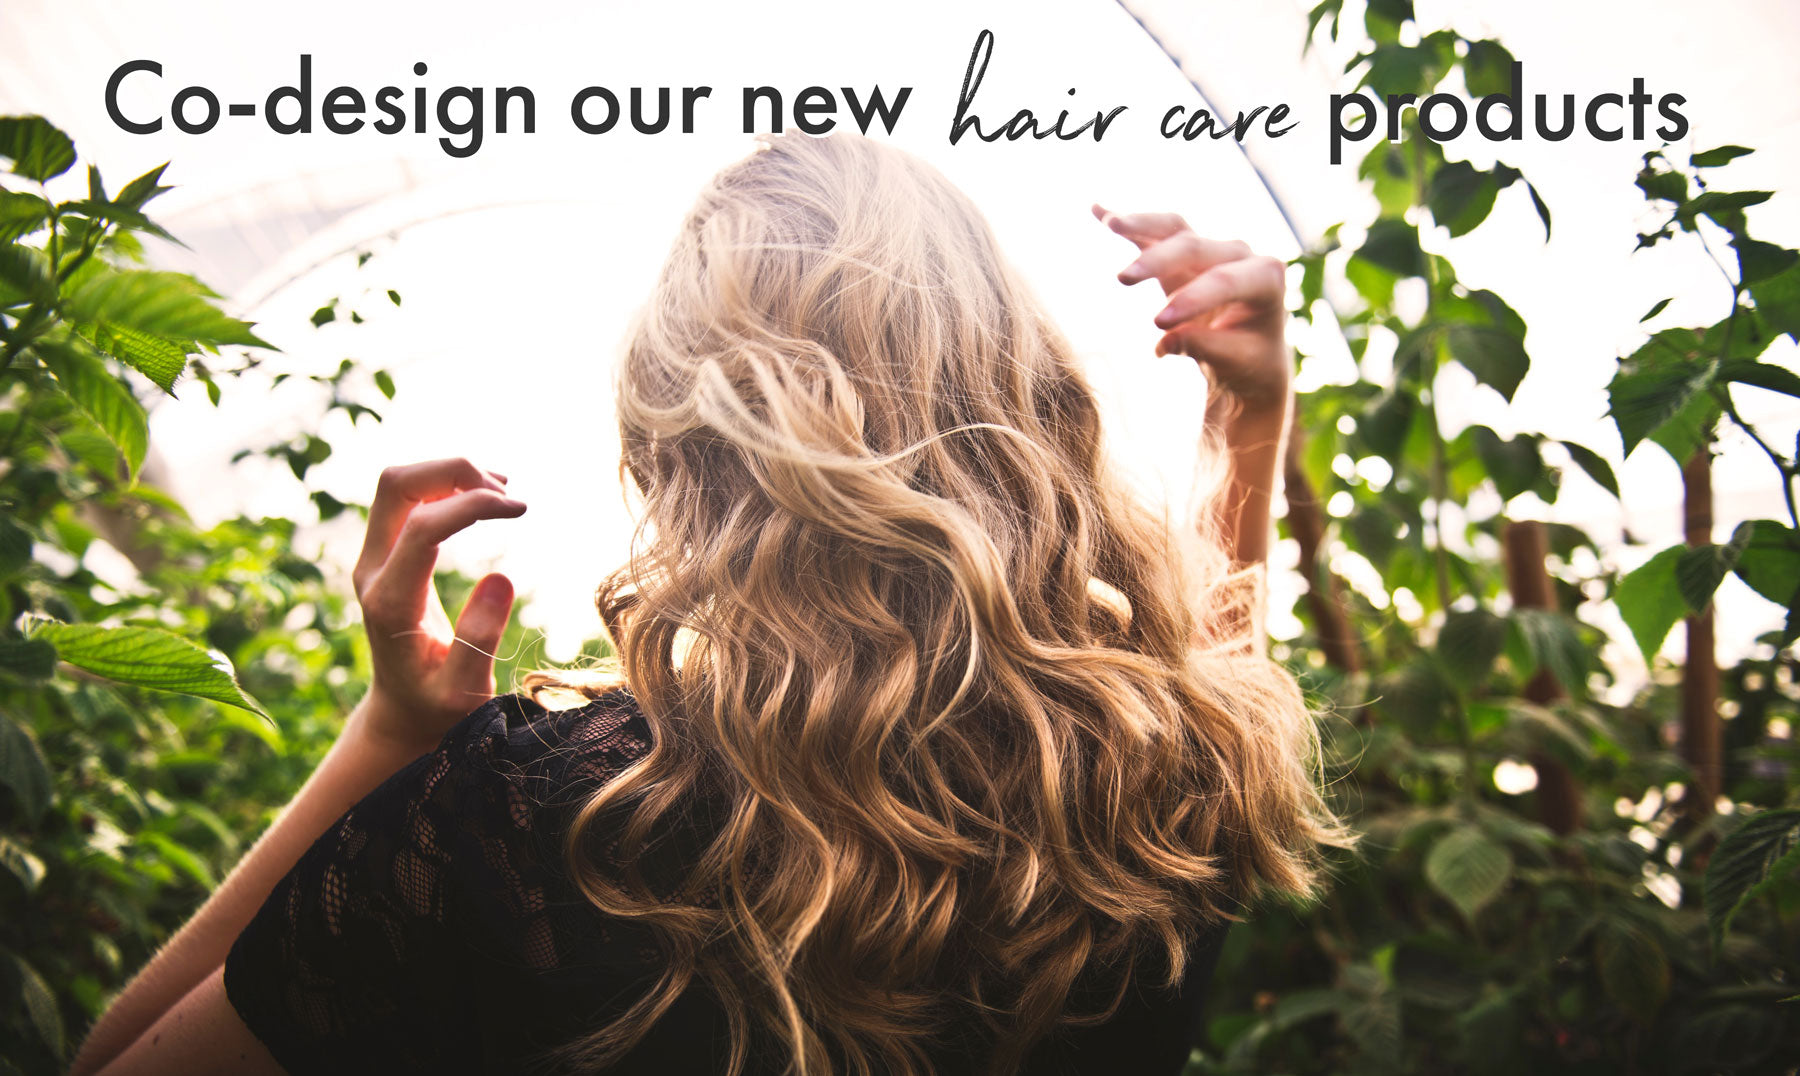 You're invited to co-design our new haircare range